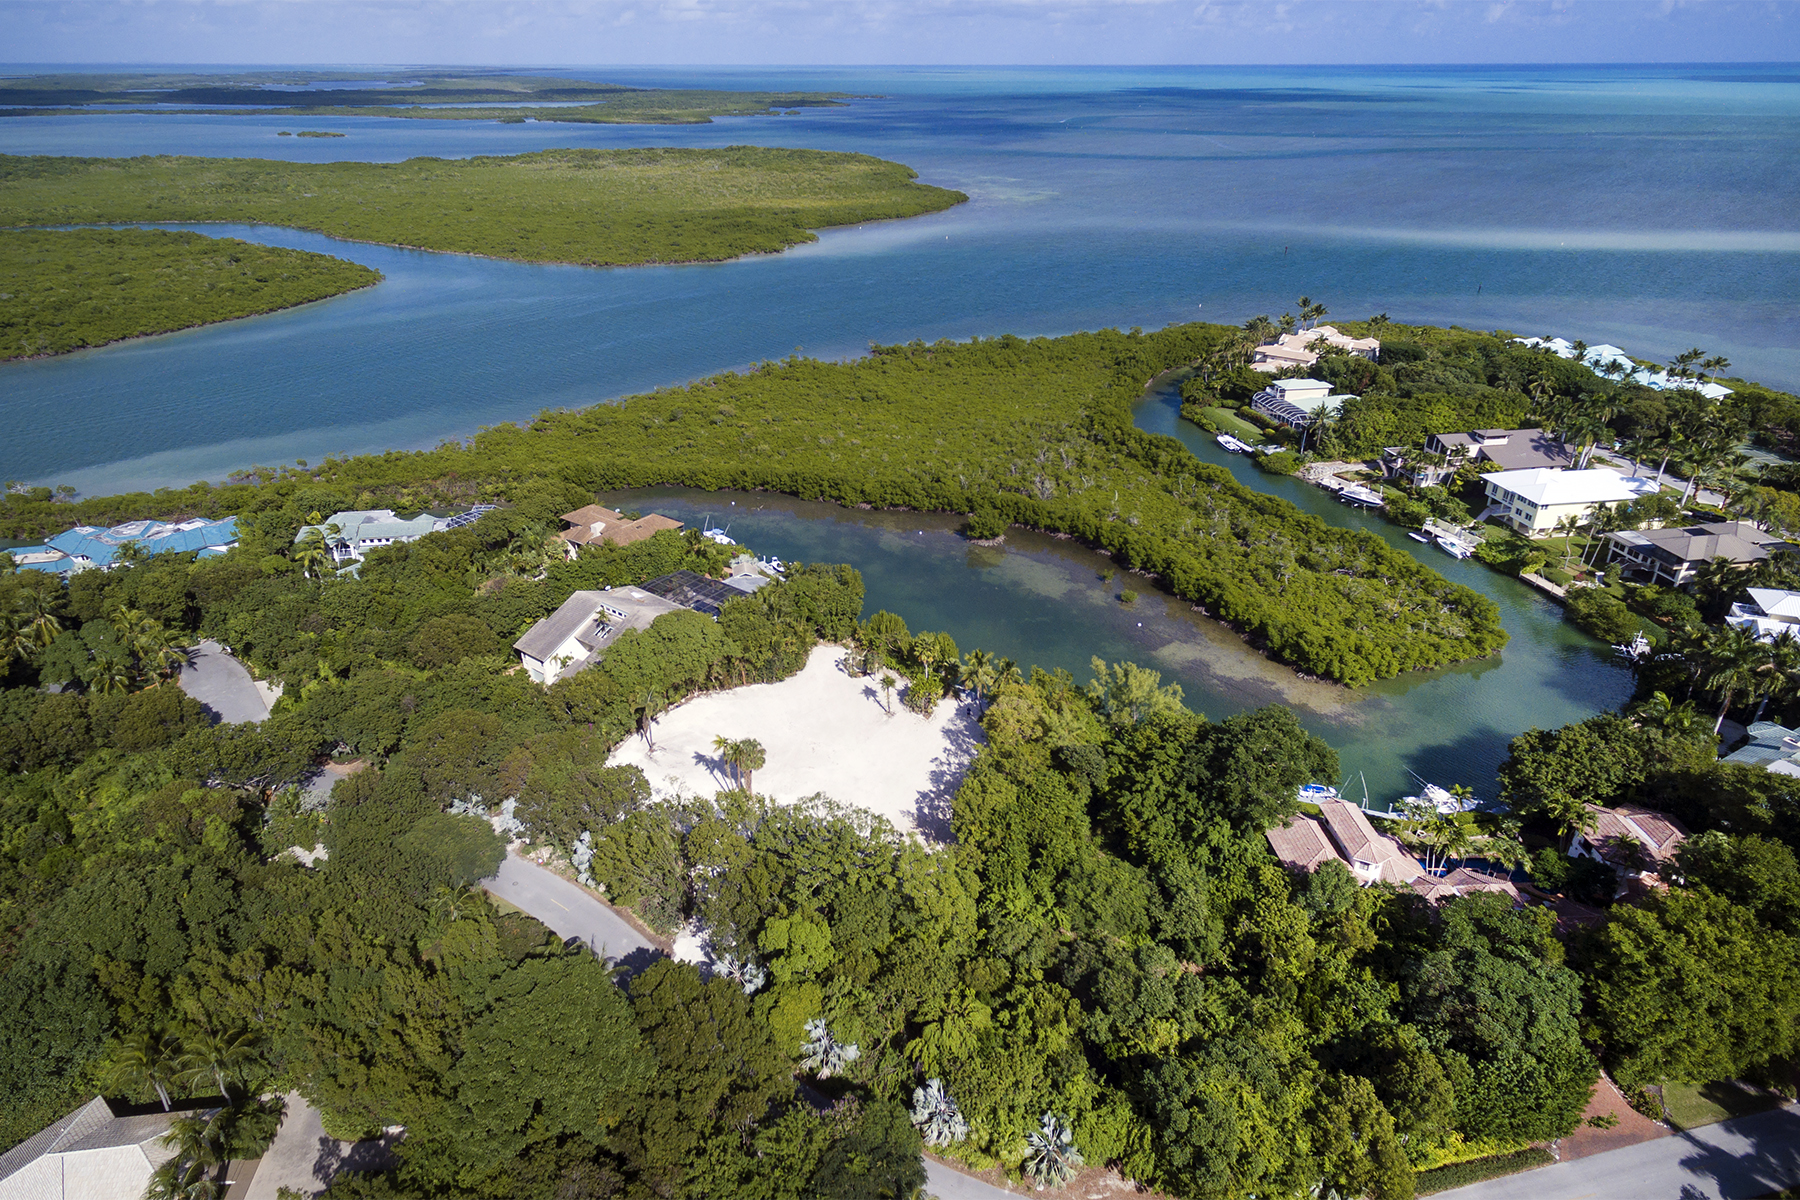 Terreno para Venda às Expansive Location to Build Your Dream Home at Ocean Reef 40-42 Cardinal Lane Ocean Reef Community, Key Largo, Florida, 33037 Estados Unidos